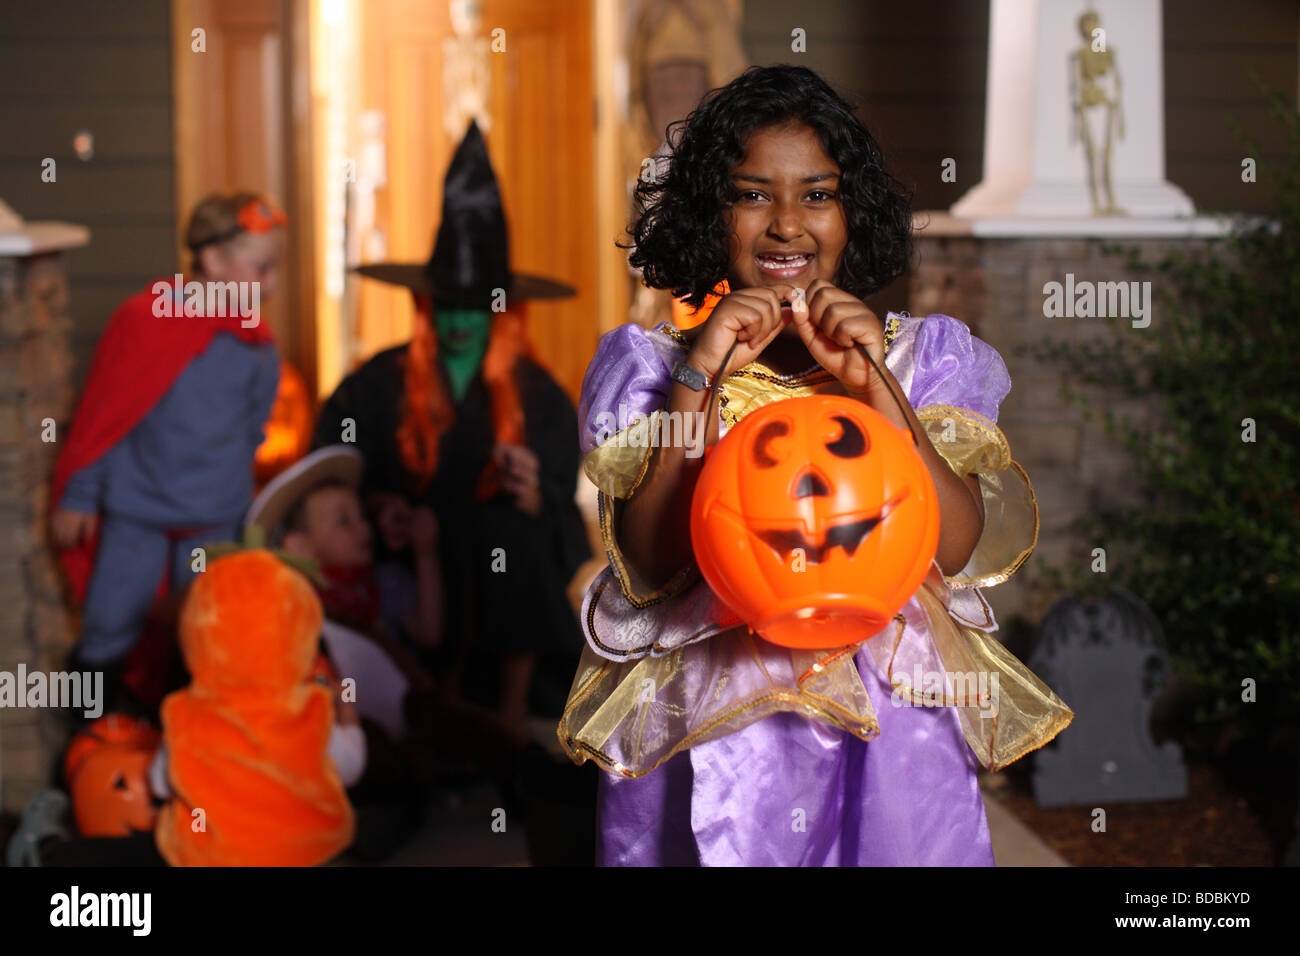 Ragazza in costume di Halloween party Immagini Stock